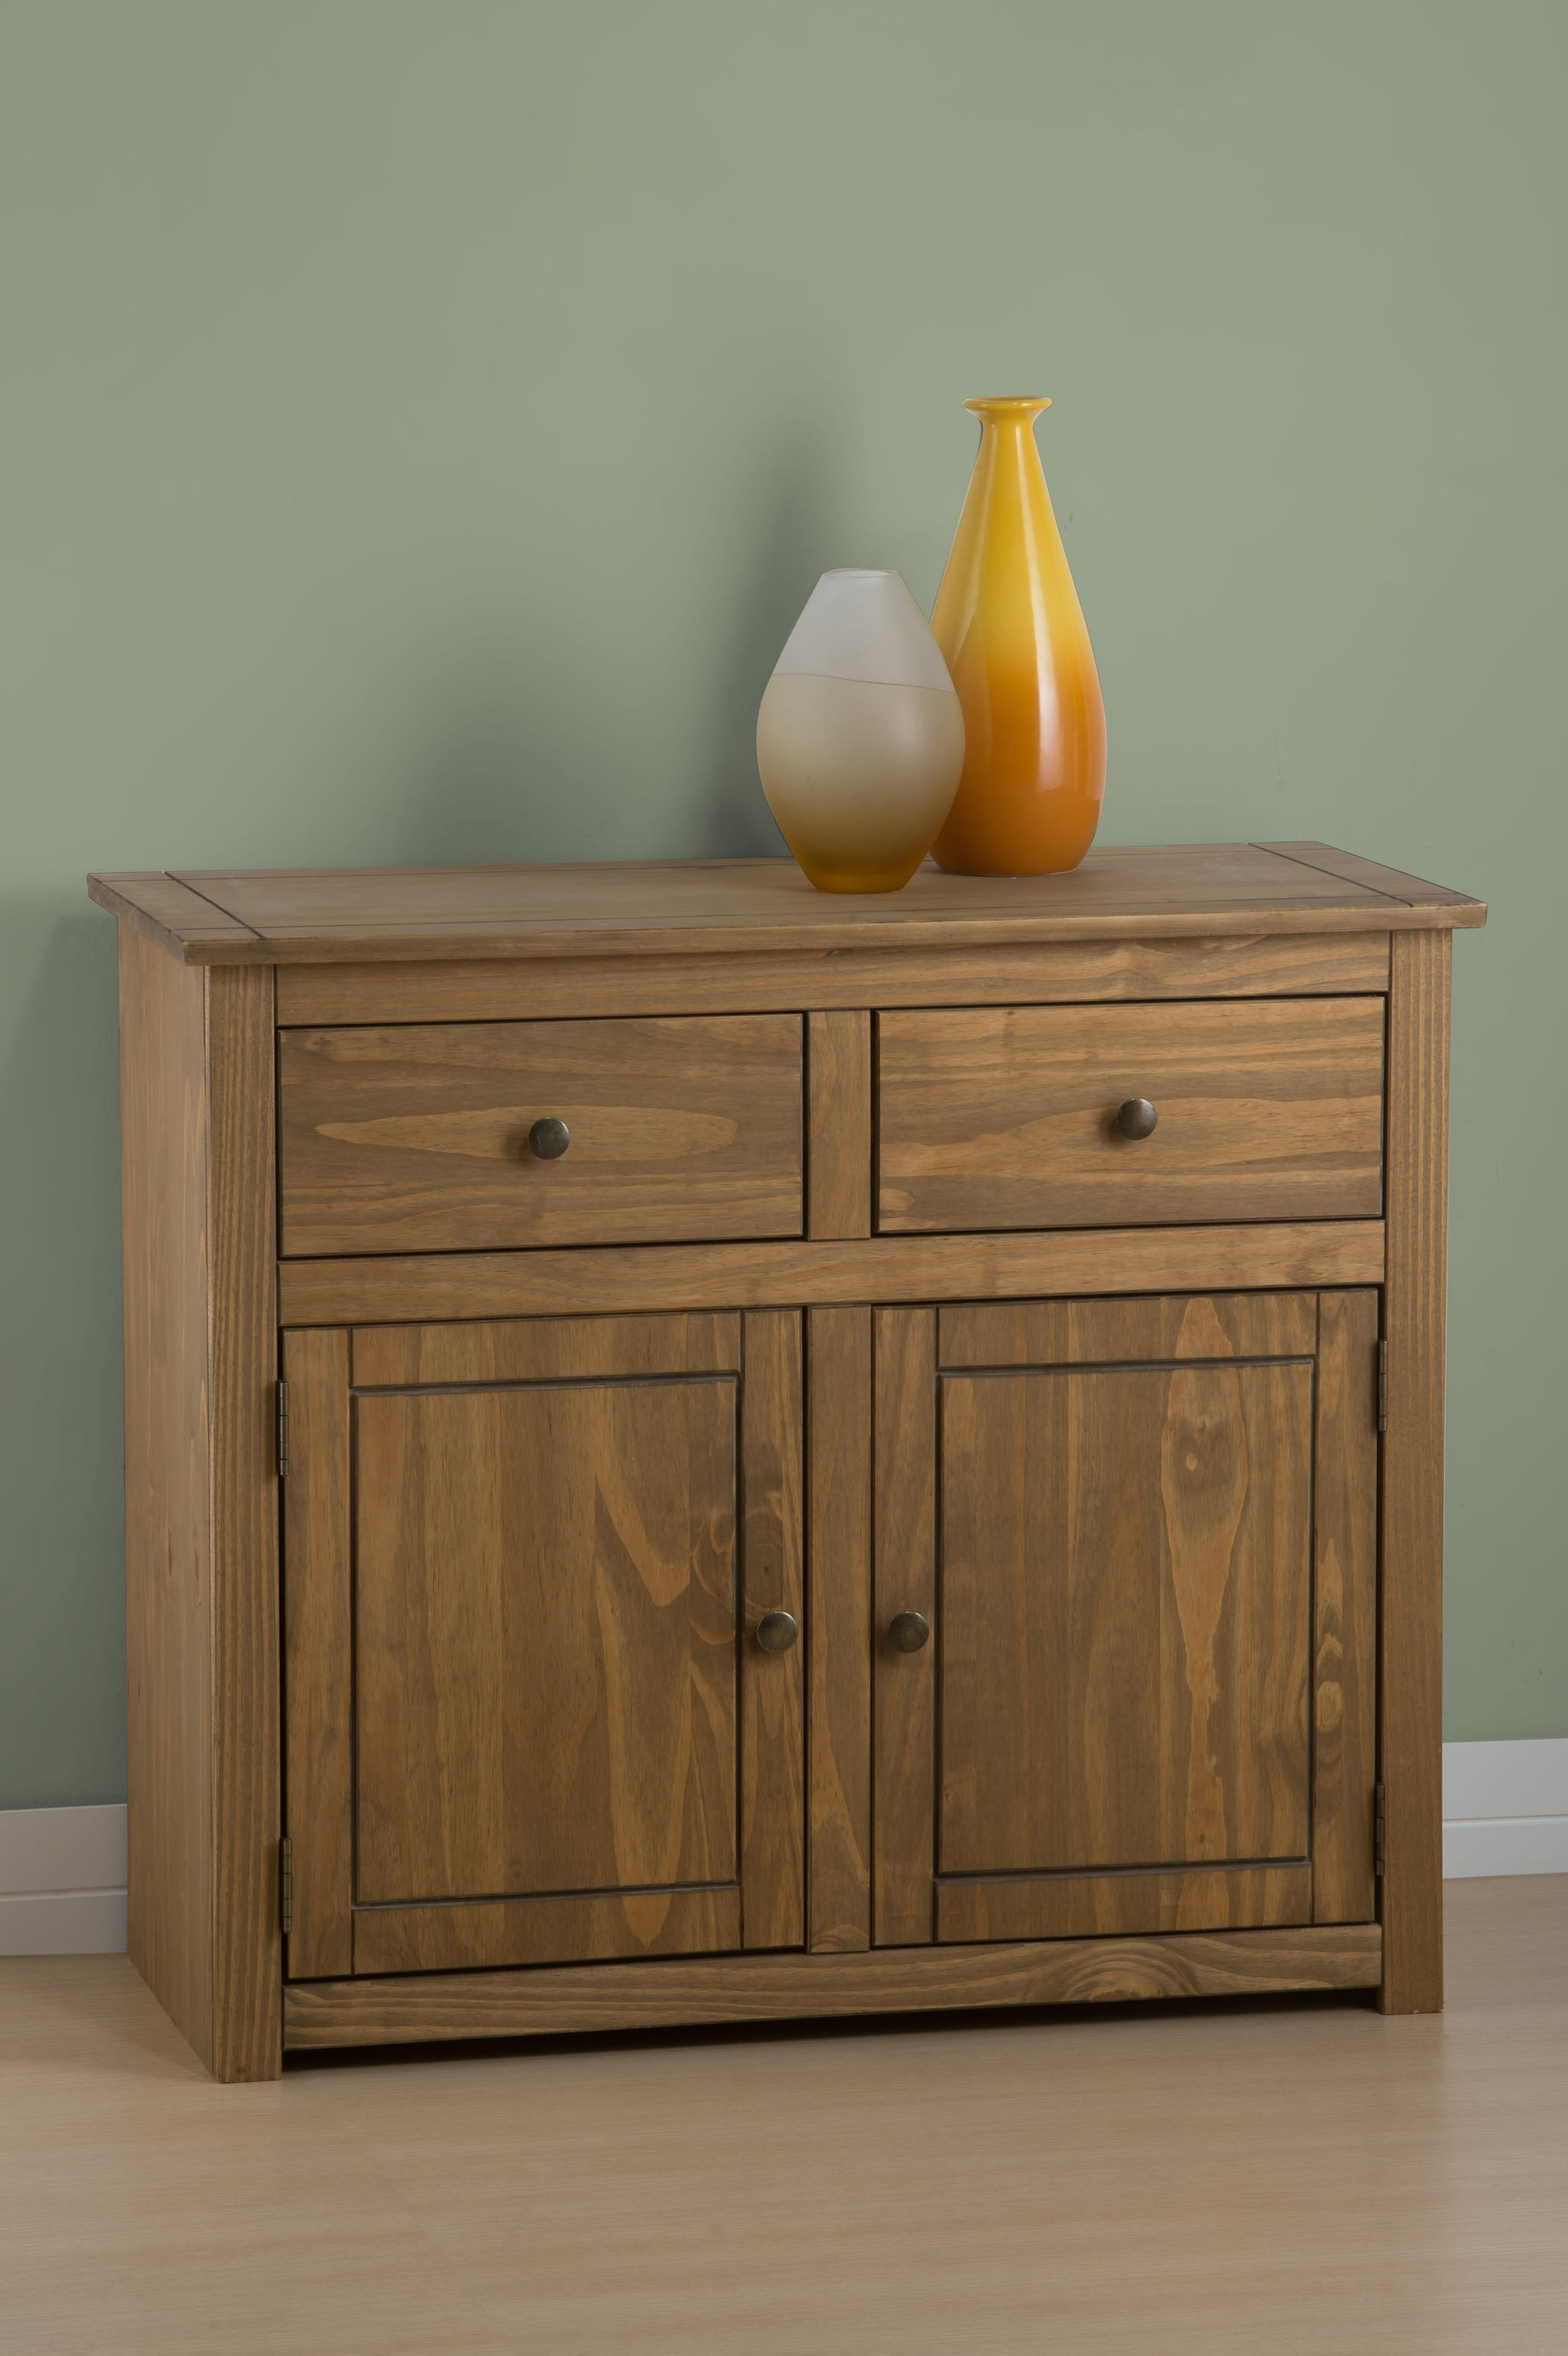 Distressed Waxed Pine Finish Sideboard Cabinet Storage Cupboard Unit intended for Reclaimed Pine Turquoise 4-Door Sideboards (Image 9 of 30)